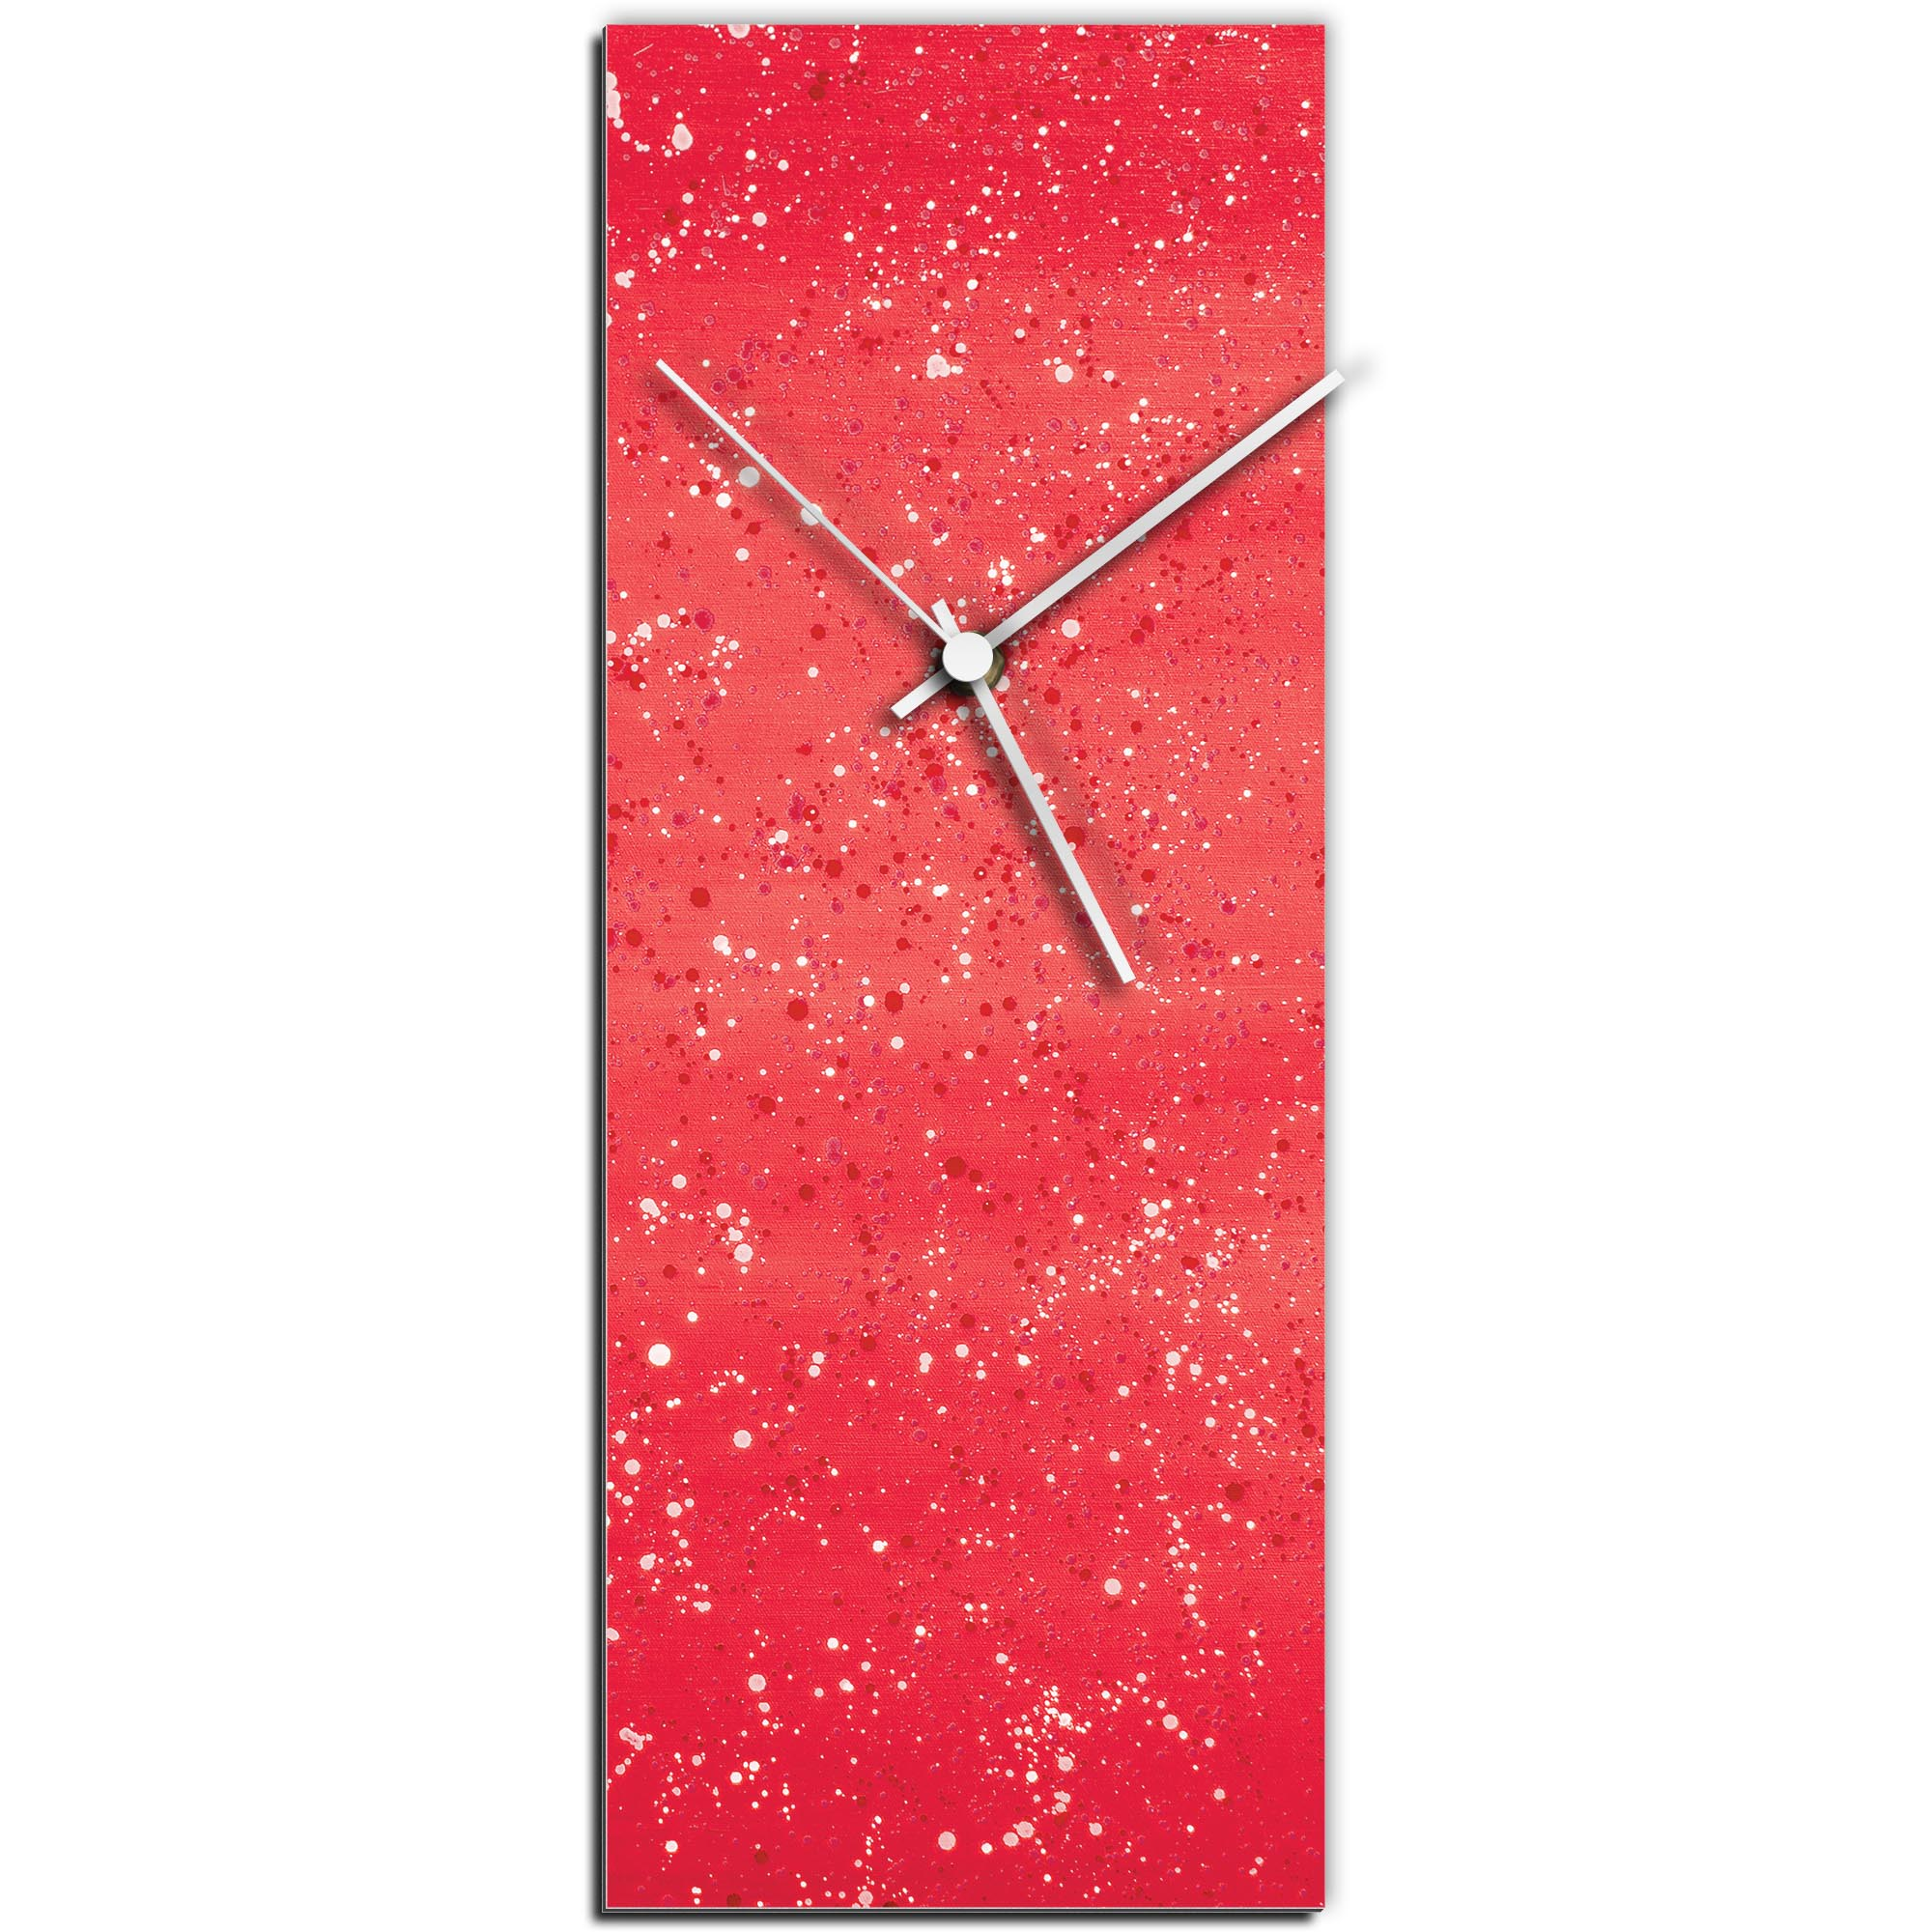 Mendo Vasilevski 'Red Flecked Clock Large' 9in x 24in Modern Wall Clock on Aluminum Composite